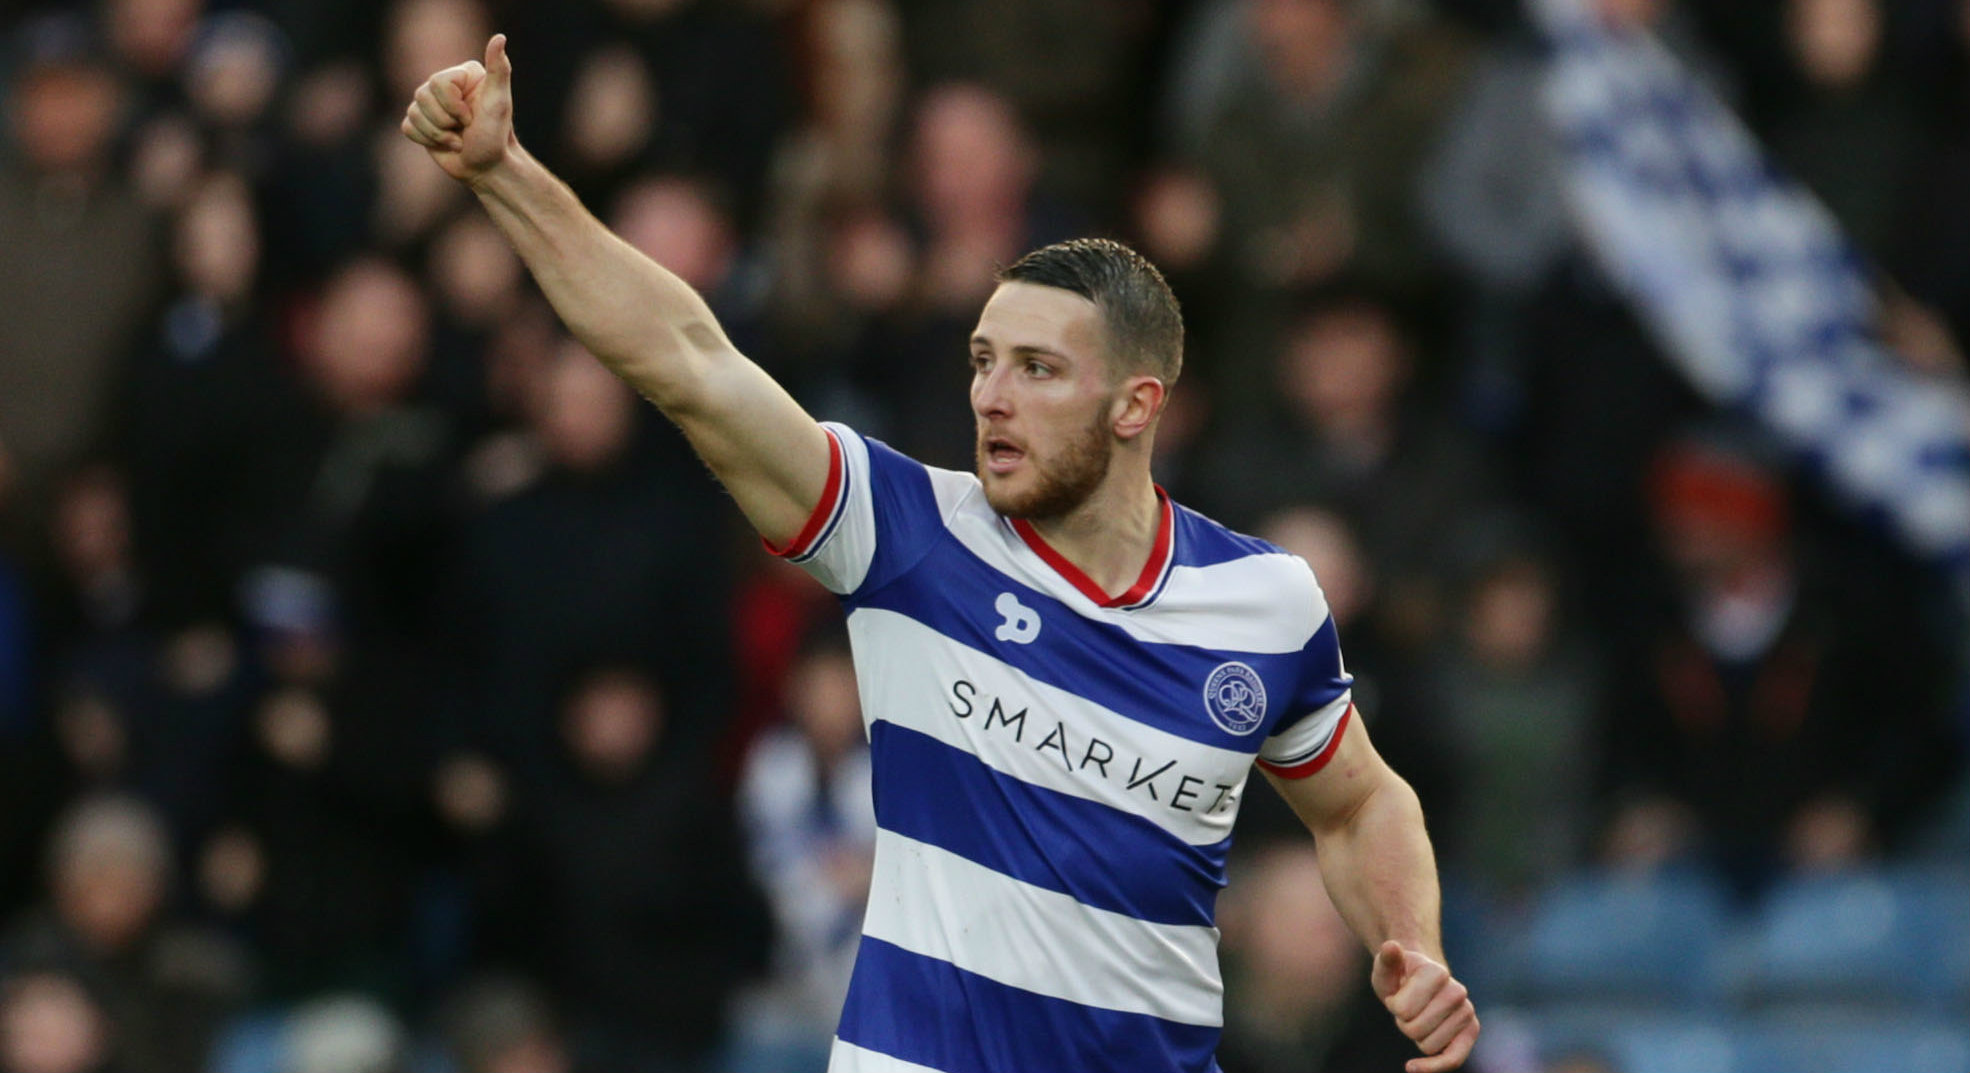 Holloway credited with Washington's QPR turnaround